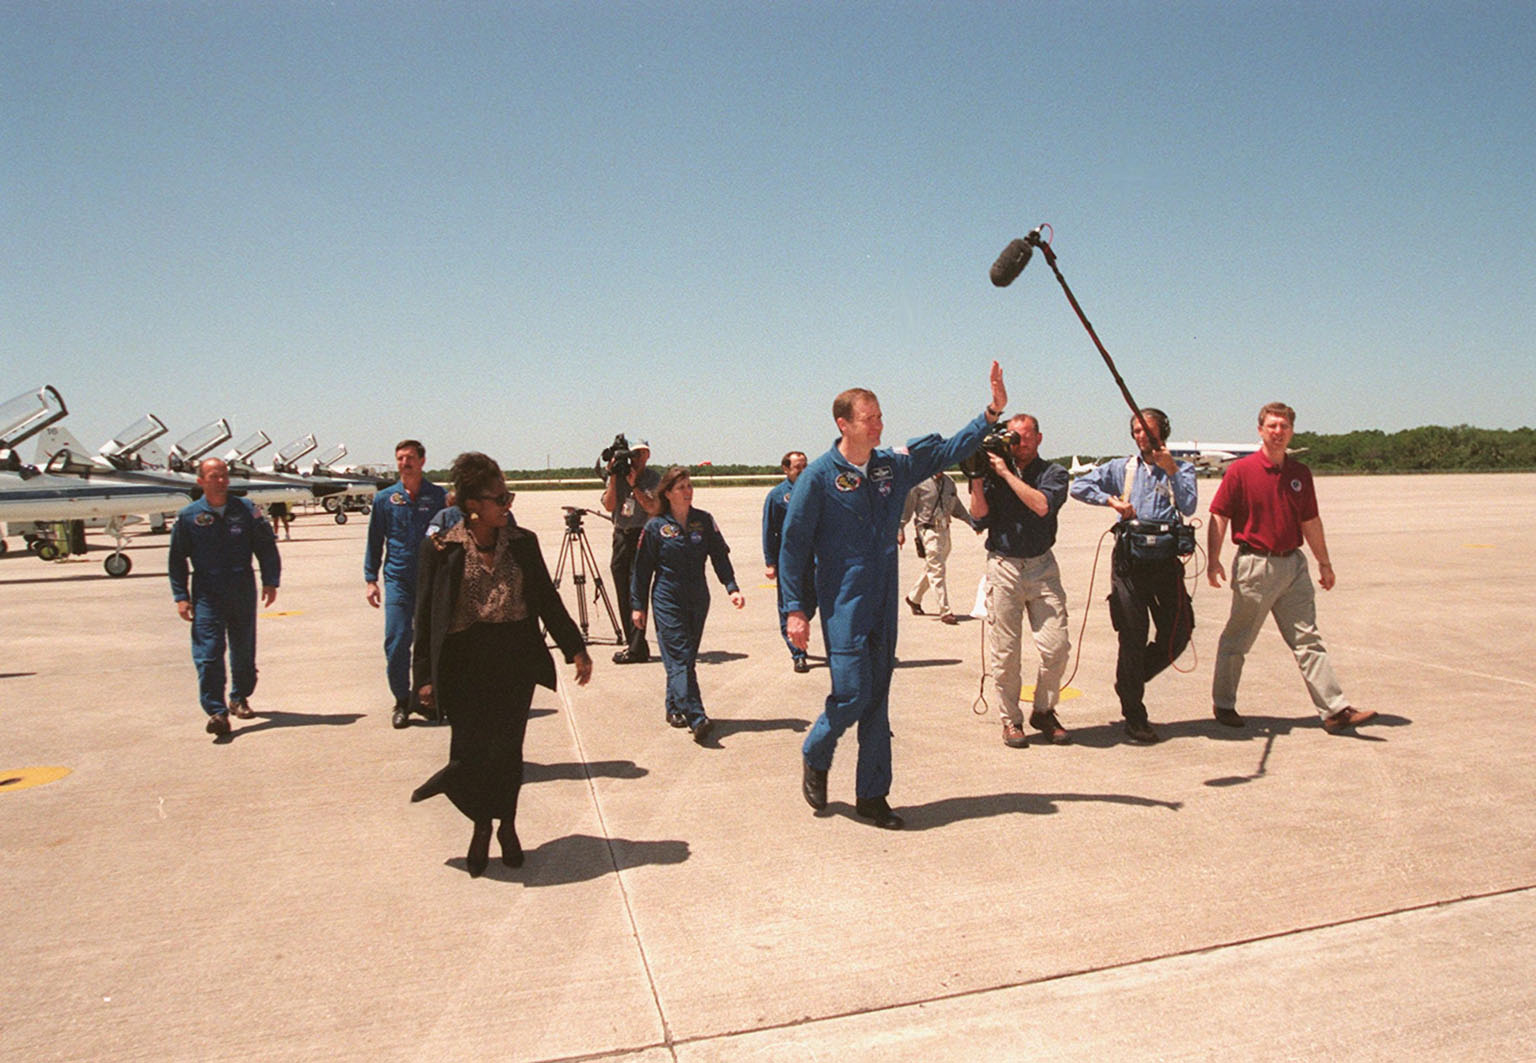 KENNEDY SPACE CENTER, FLA. -- At the Shuttle Landing Facility, STS-101 Commander James Halsell waves to the media as he and other crew members cross the tarmac to a waiting bus. At right is a film crew; in the foreground at left is Delores Green, flight crew support specialist lead for the astronaut crew quarters. Other crew members in the background are Mission Specialist Jeffrey Williams, Pilot Scott Horowitz, and Mission Specialists Mary Ellen Weber and Yury Usachev. Not visible in the photo is Mission Specialist Susan Helms. During their mission to the International Space Station, the STS-101 crew will be delivering logistics and supplies, plus preparing the Station for the arrival of the Zvezda Service Module, expected to be launched by Russia in July 2000. Also, the crew will conduct one space walk to perform maintenance on the Space Station. This will be the third assembly flight for the Space Station. STS-101 is scheduled to launch April 24 at 4:15 p.m. from Launch Pad 39A